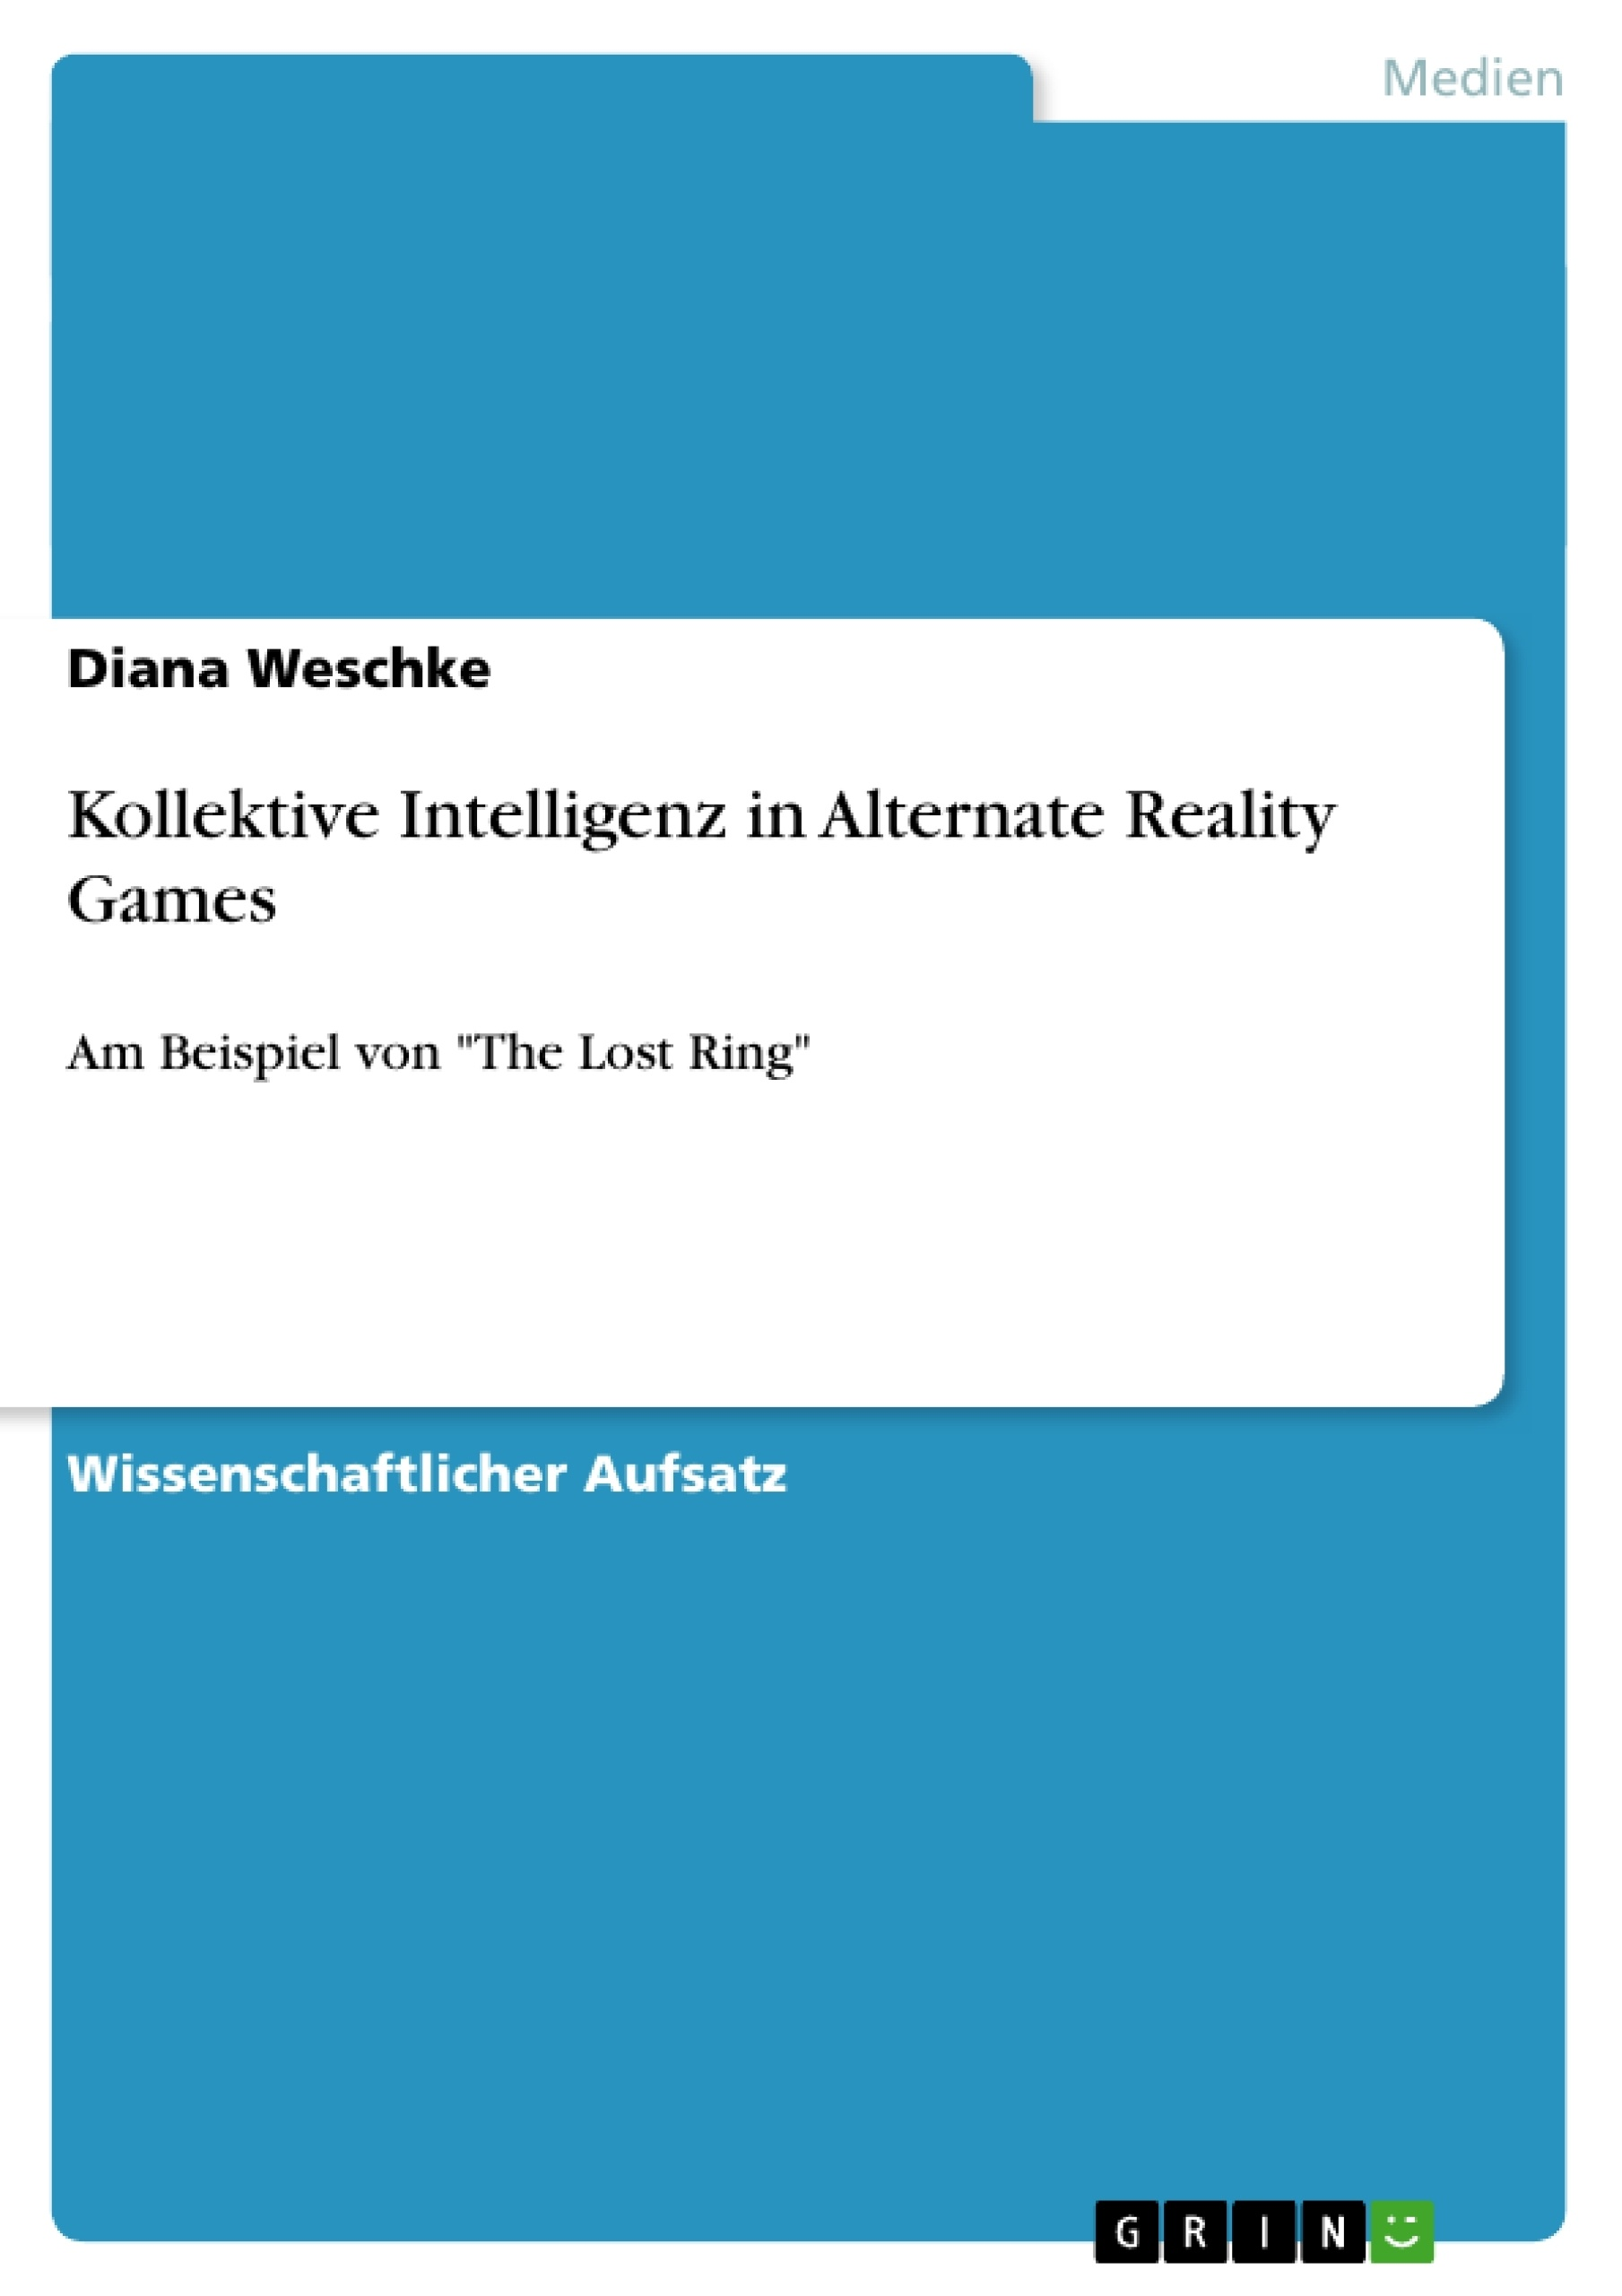 Titel: Kollektive Intelligenz in Alternate Reality Games